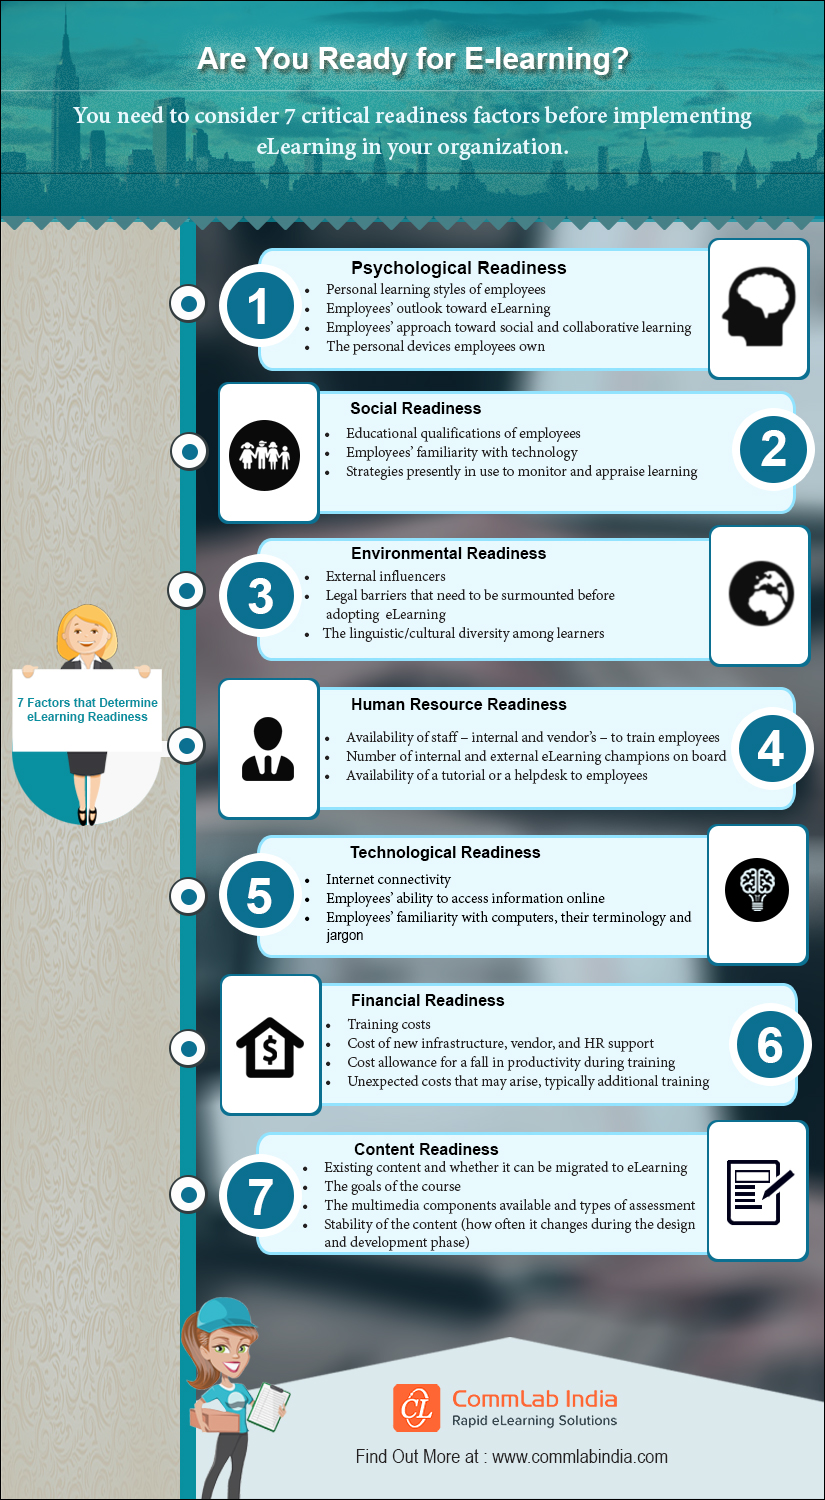 Are You Ready for E-learning? [Infographic]